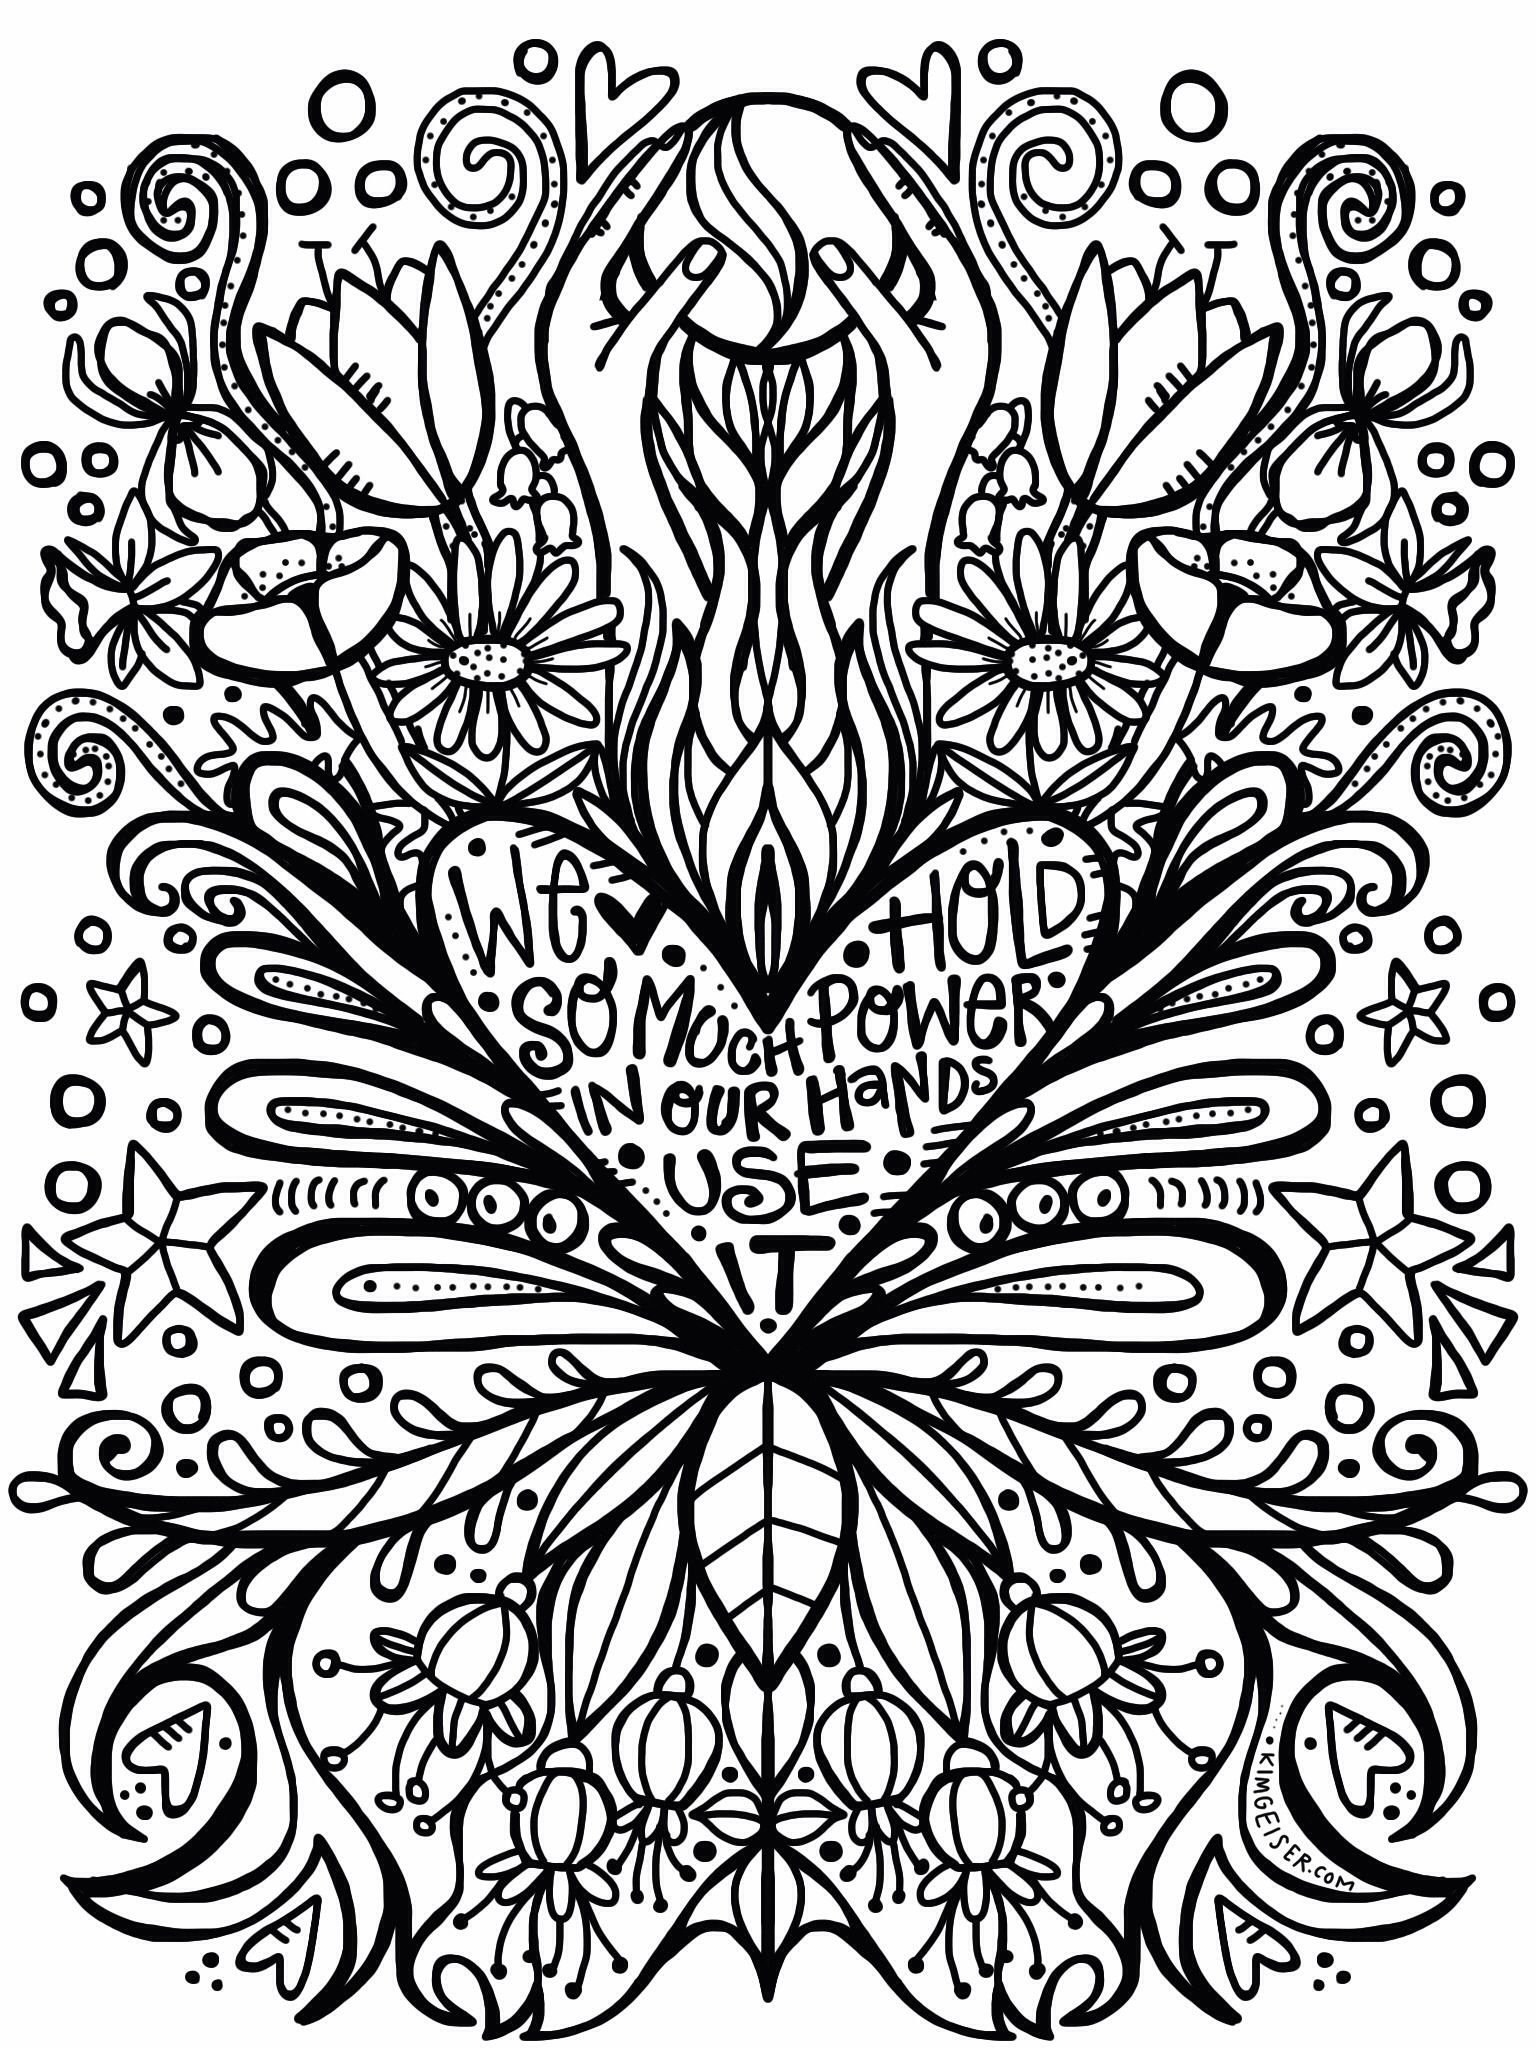 Free March Coloring Page Coloring Pages Heart Healthy Dinners Colouring Art Therapy